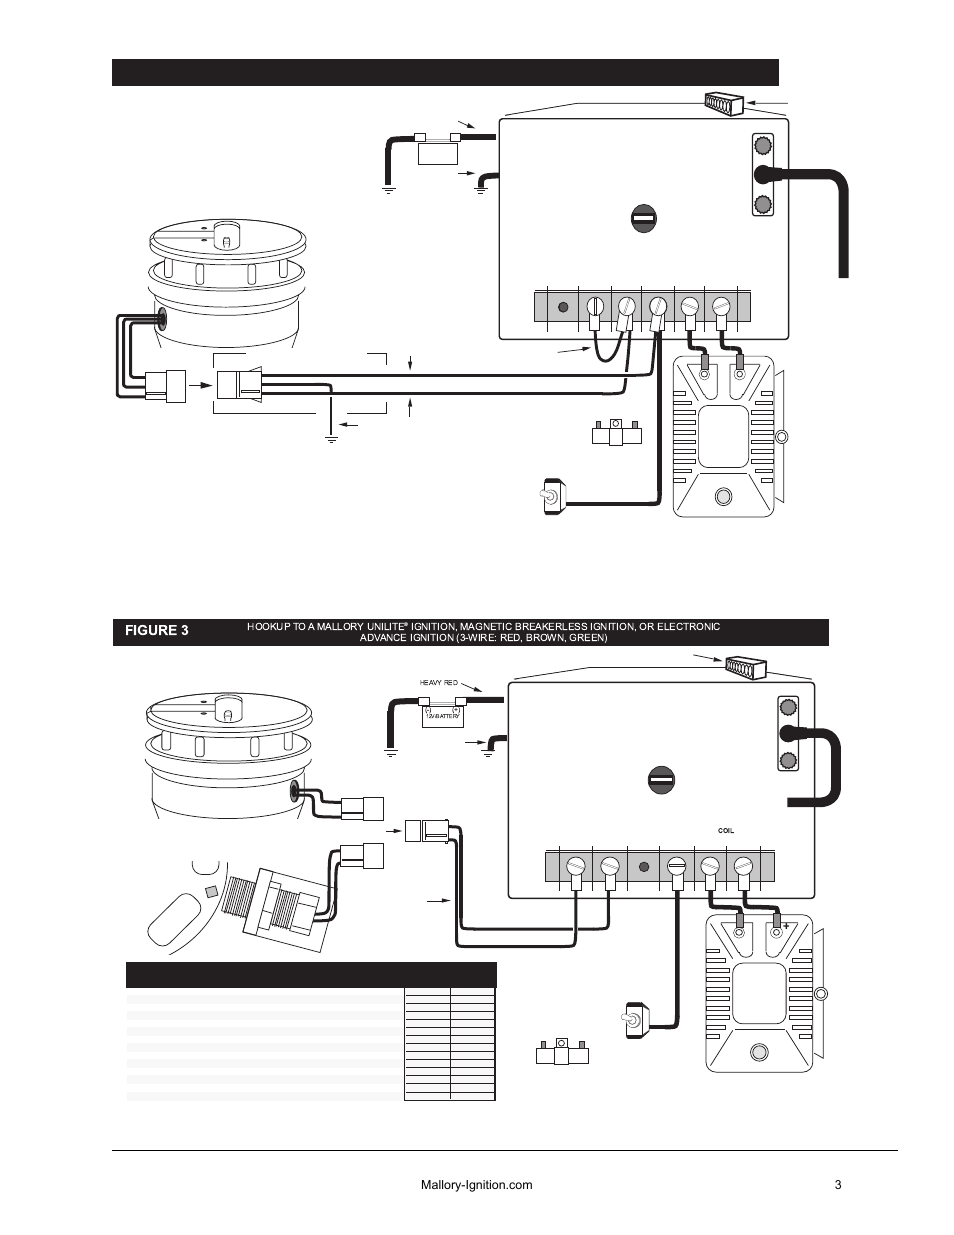 medium resolution of mallory hyfire ignition wiring diagram detailed schematics diagram rh antonartgallery com